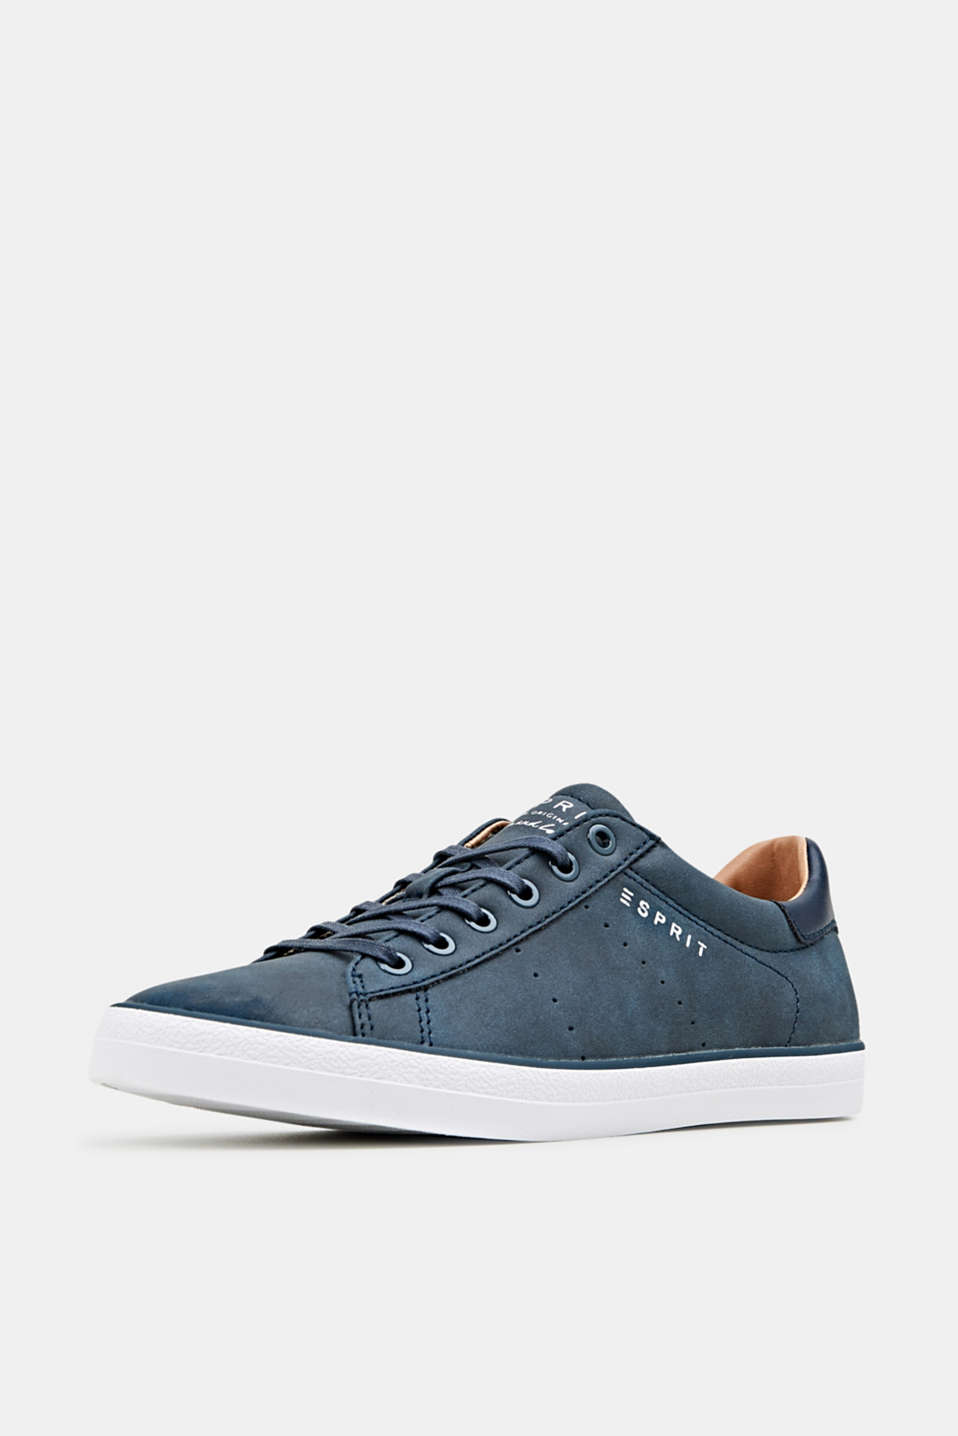 Flat faux leather trainers, NAVY, detail image number 2